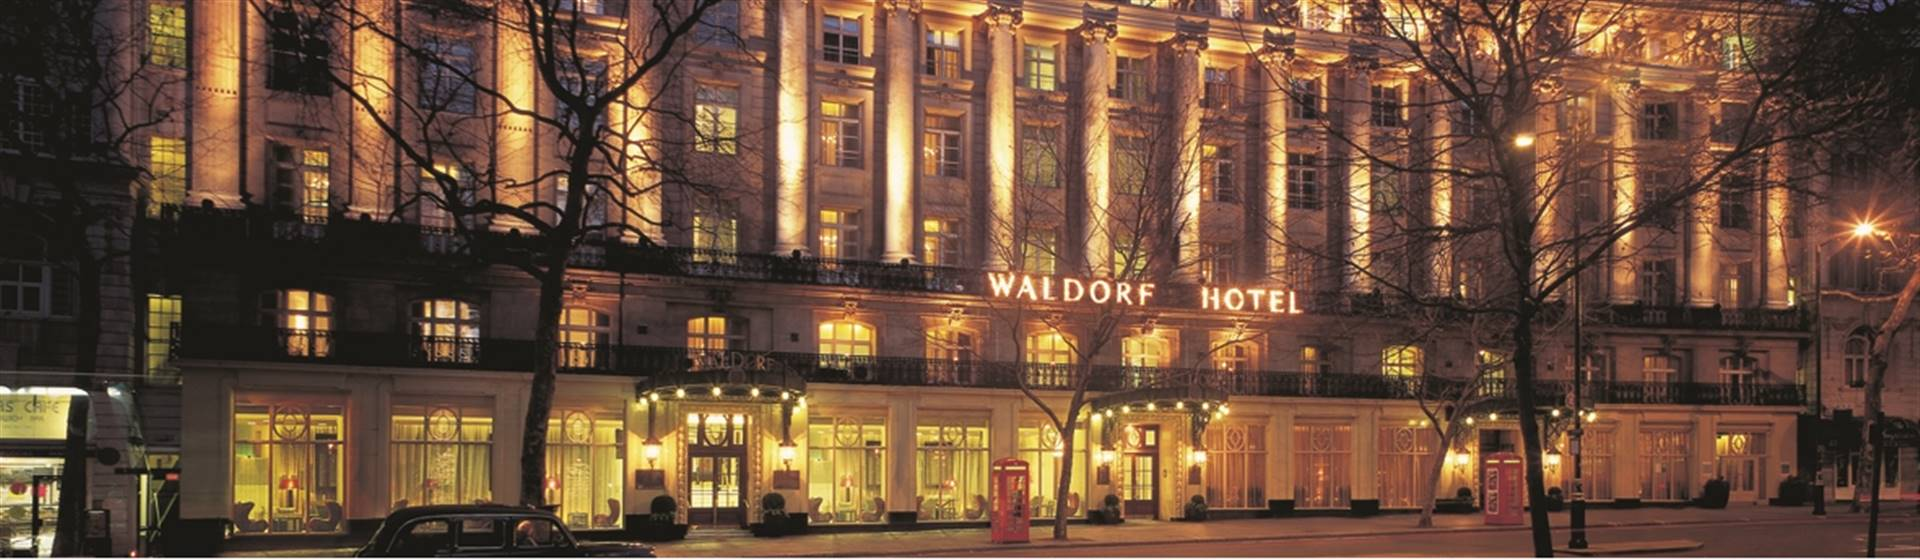 Sunday night at the Waldorf with Afternoon Tea